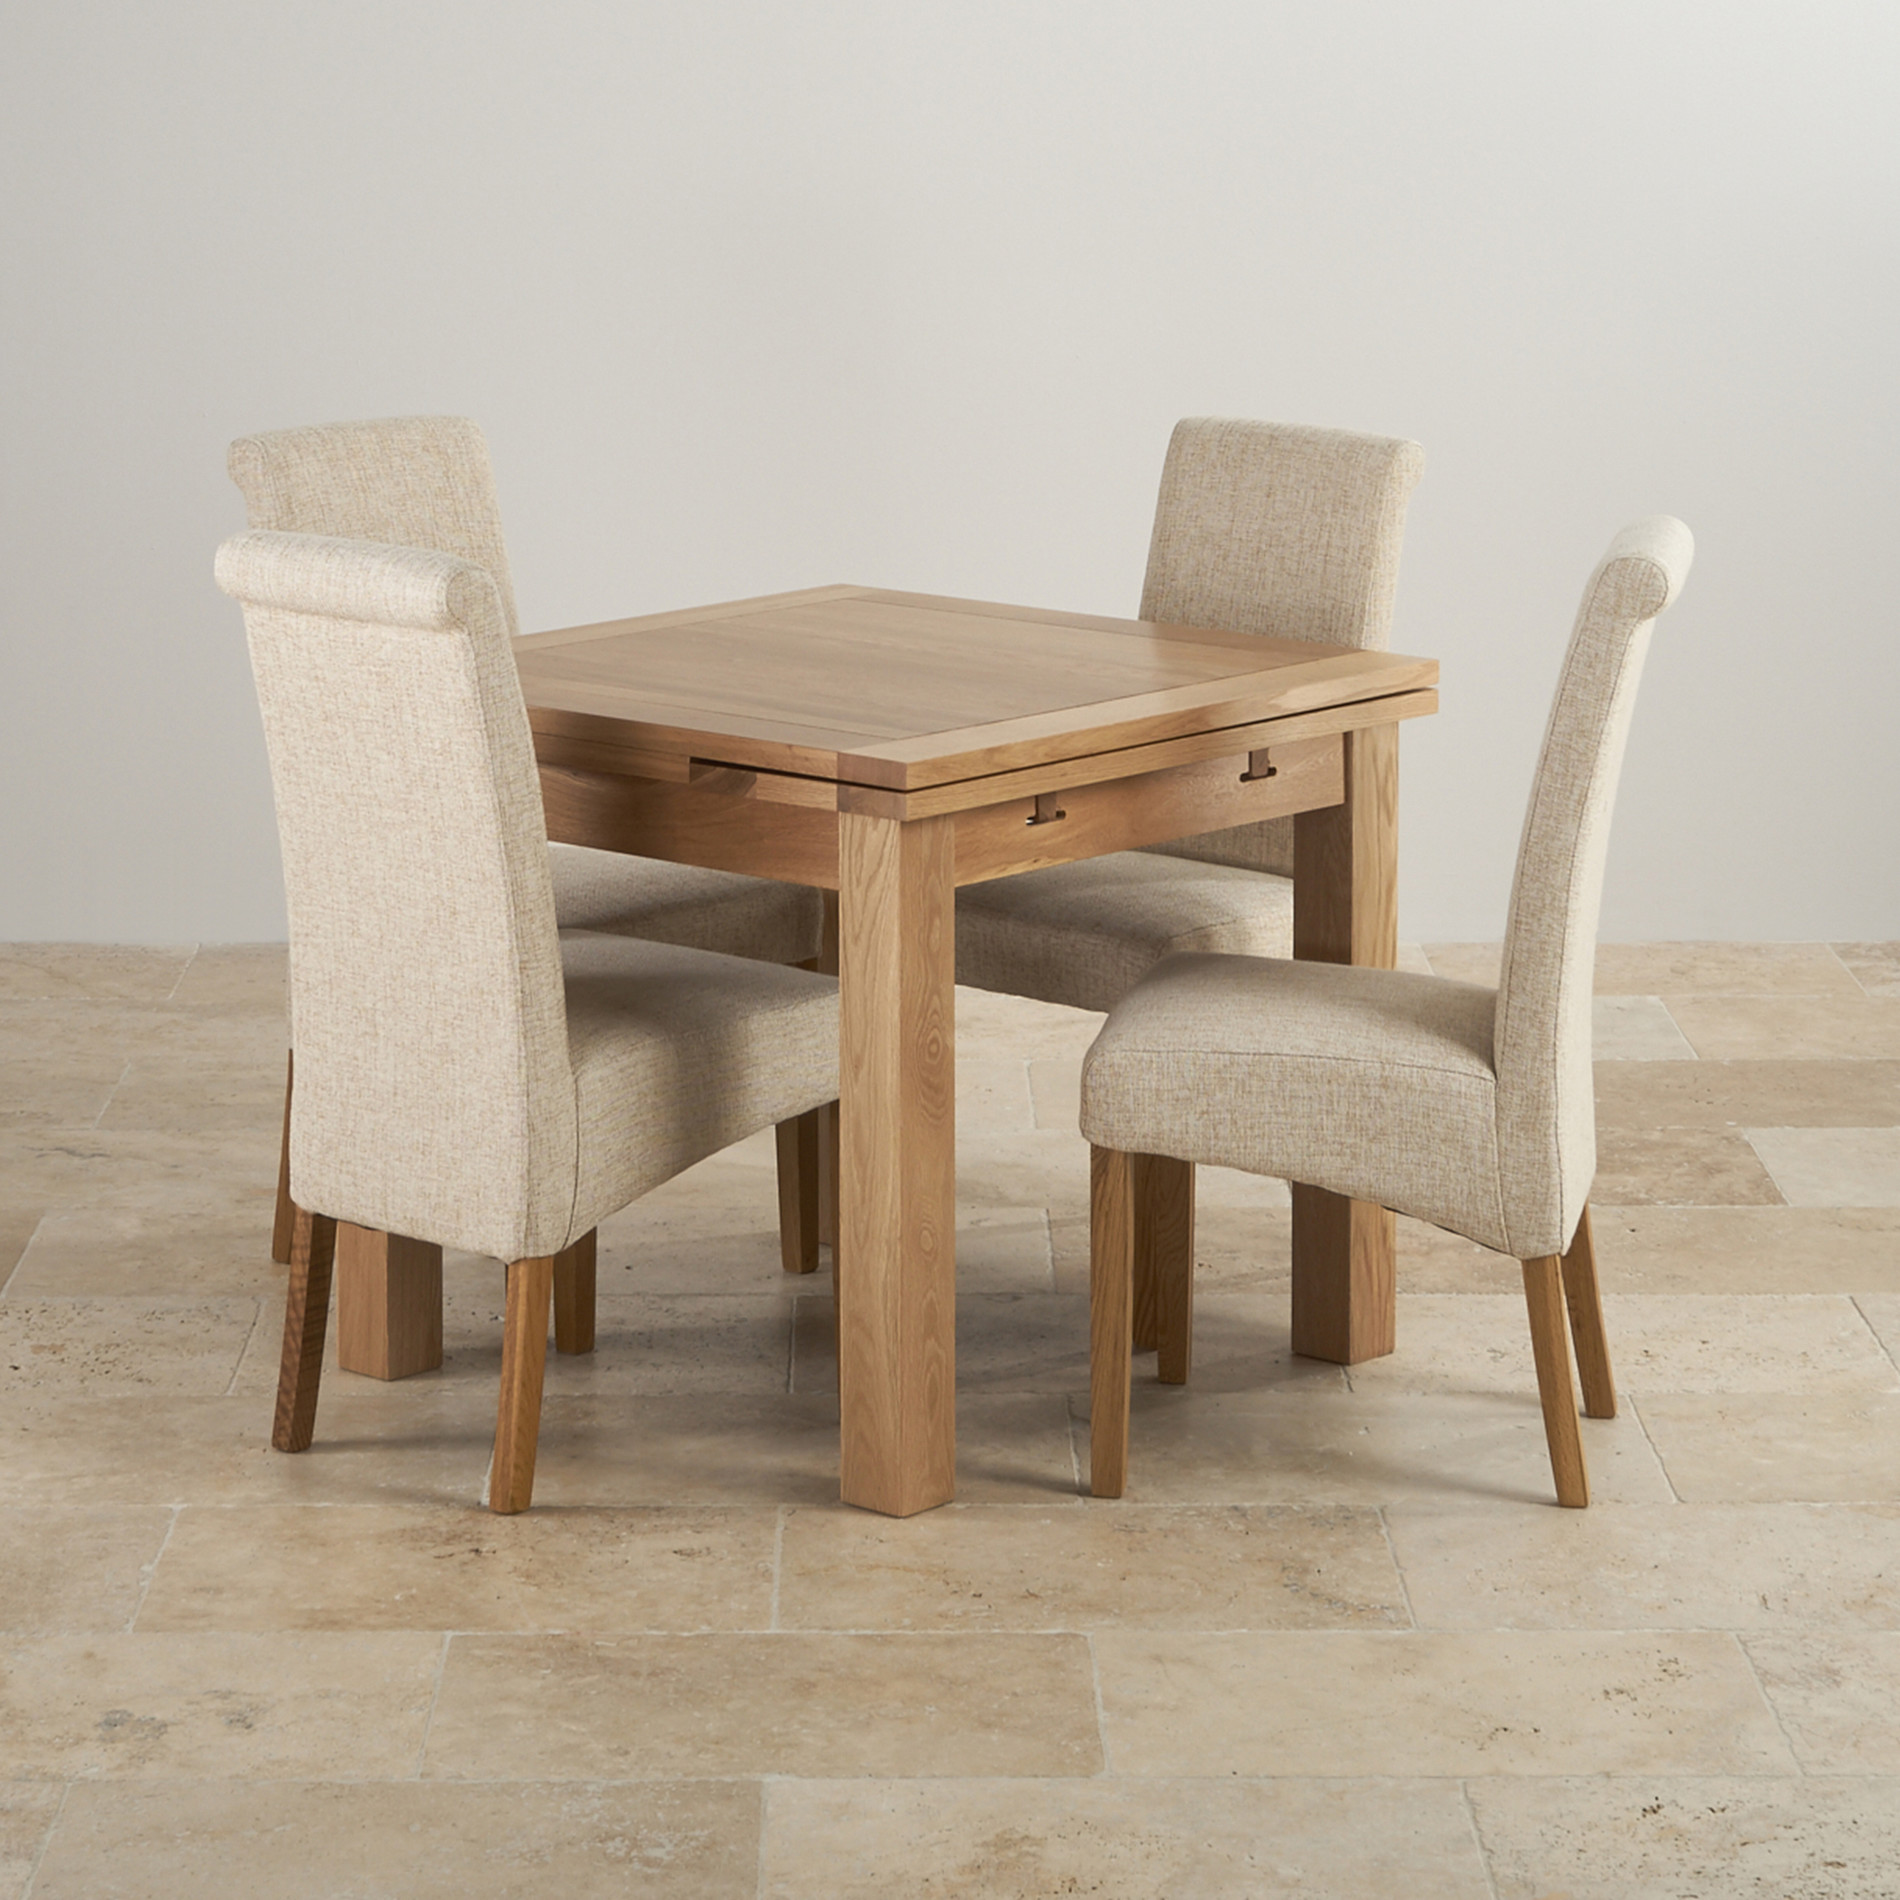 Dorset oak 3ft dining table with 4 beige fabric chairs for Dining room table and 4 chairs